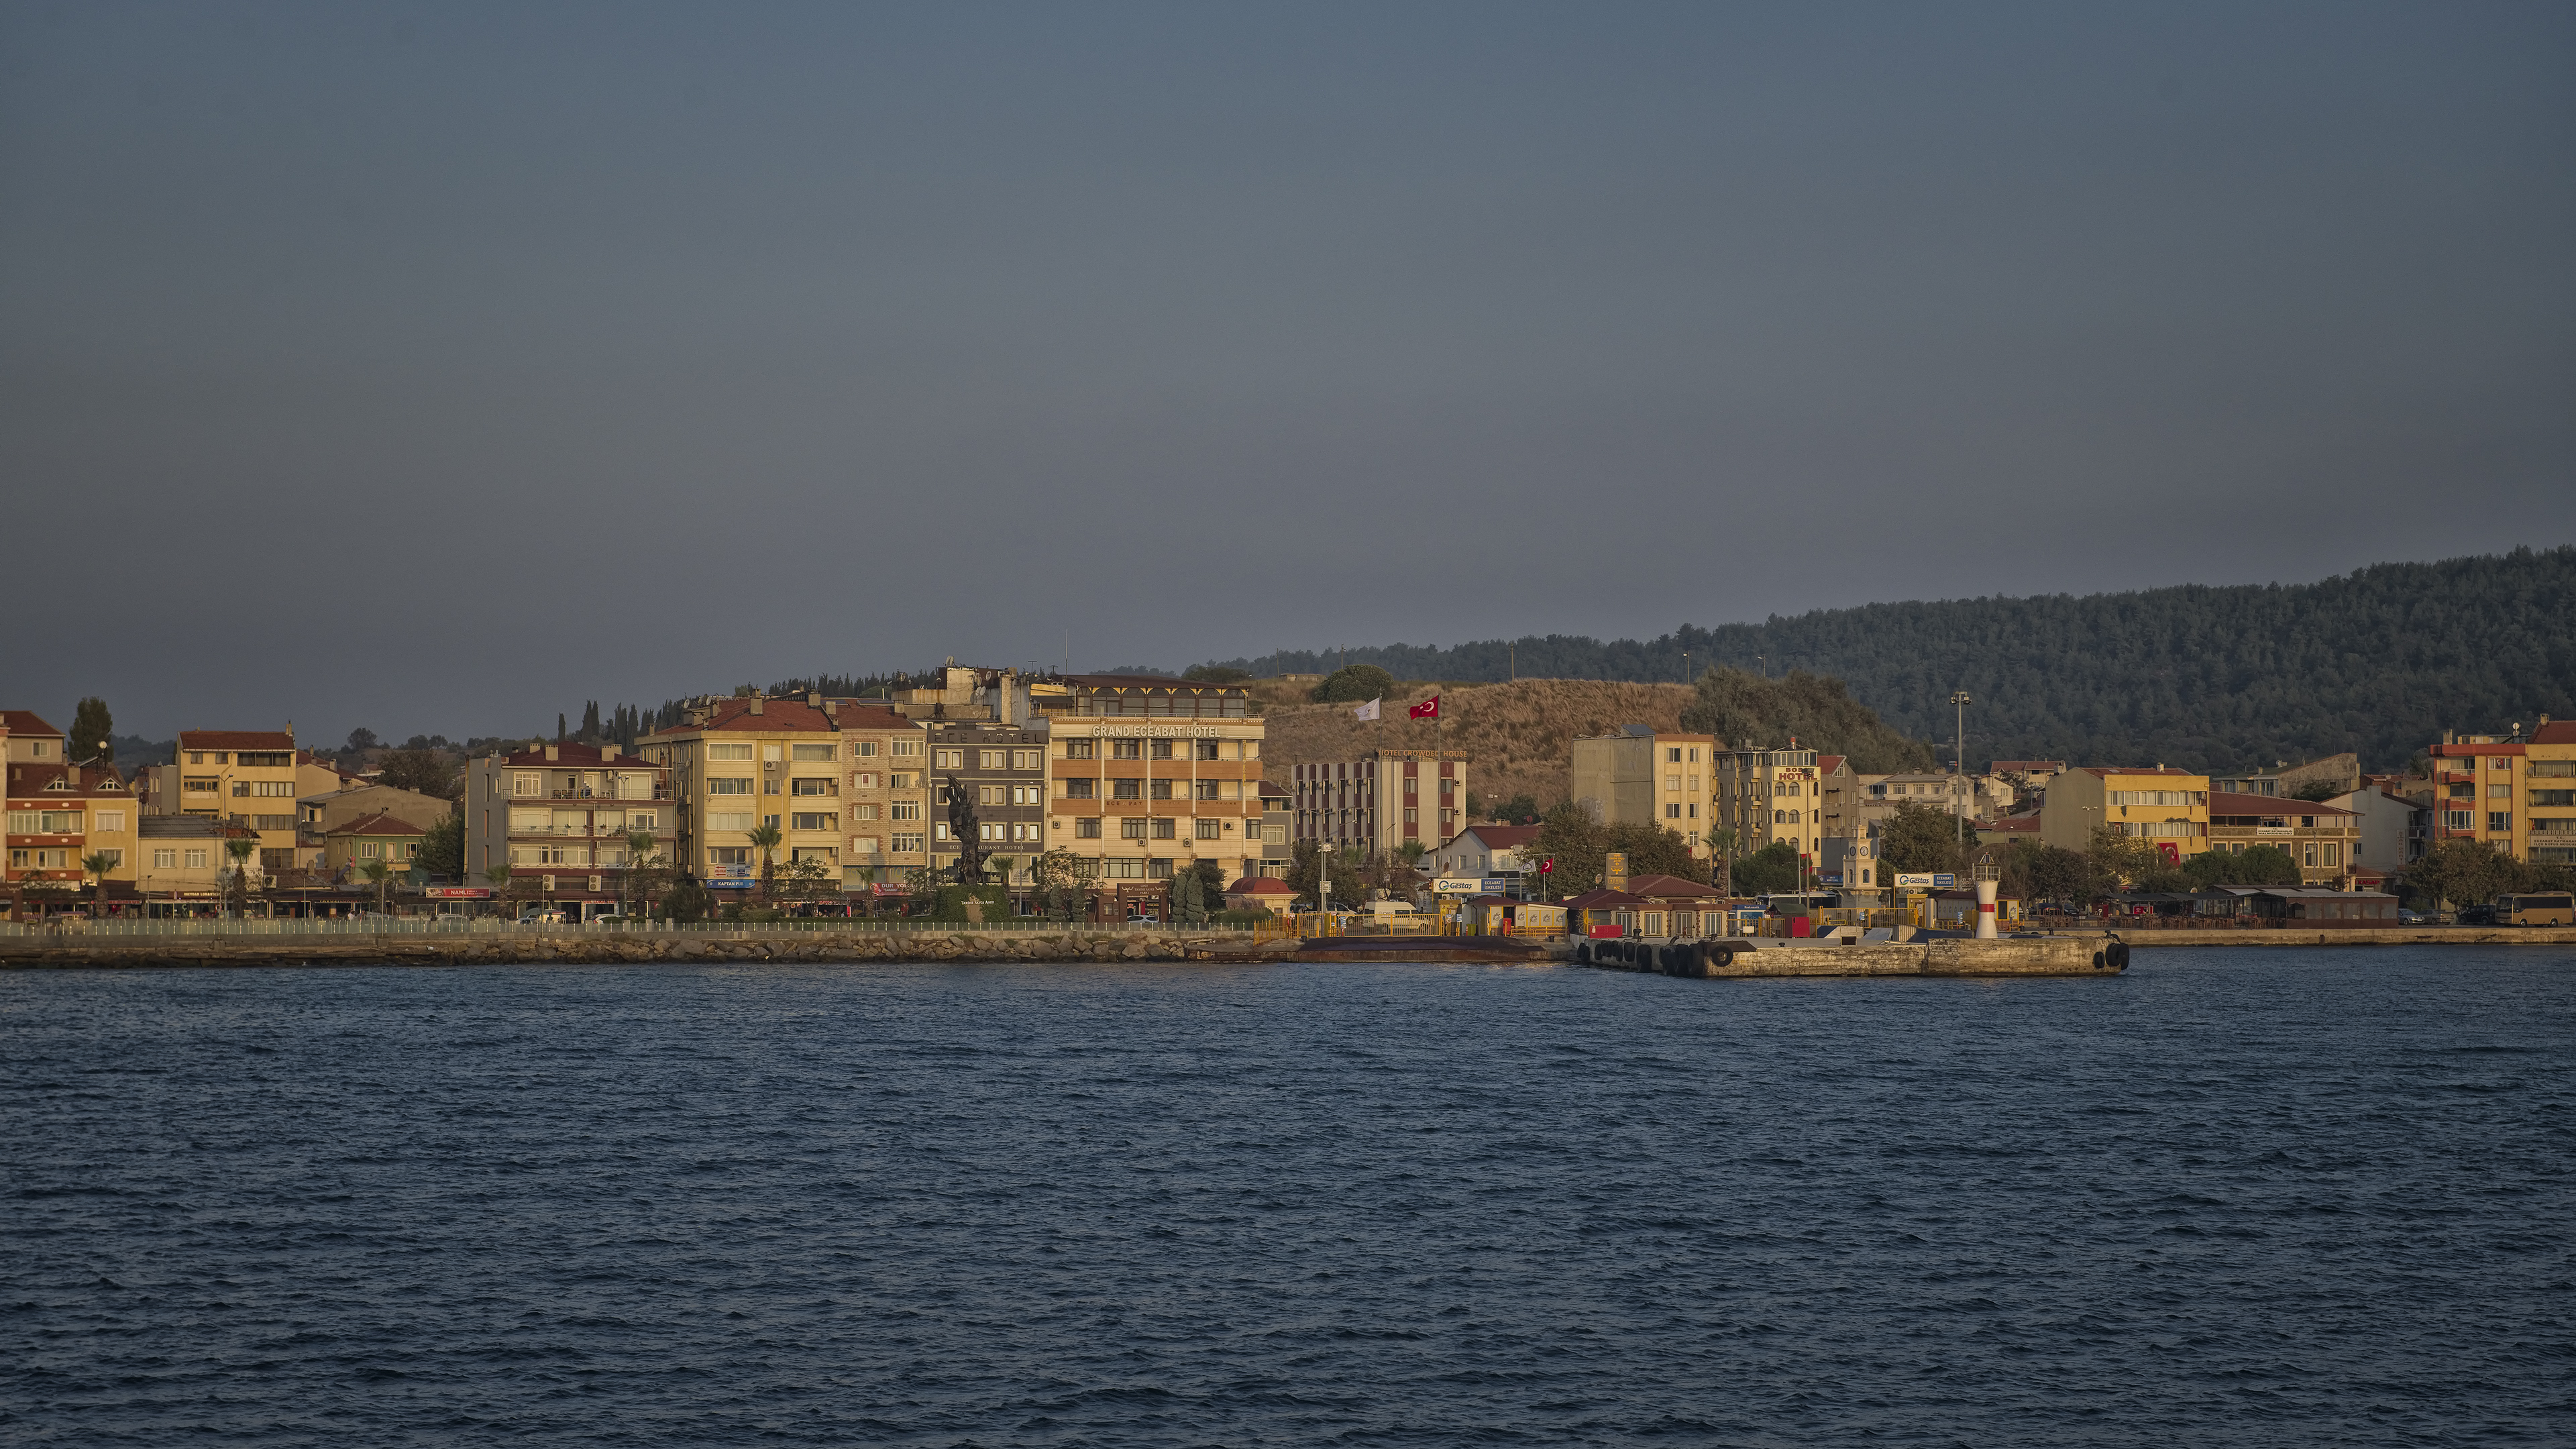 From Canakkale to Gallipoli